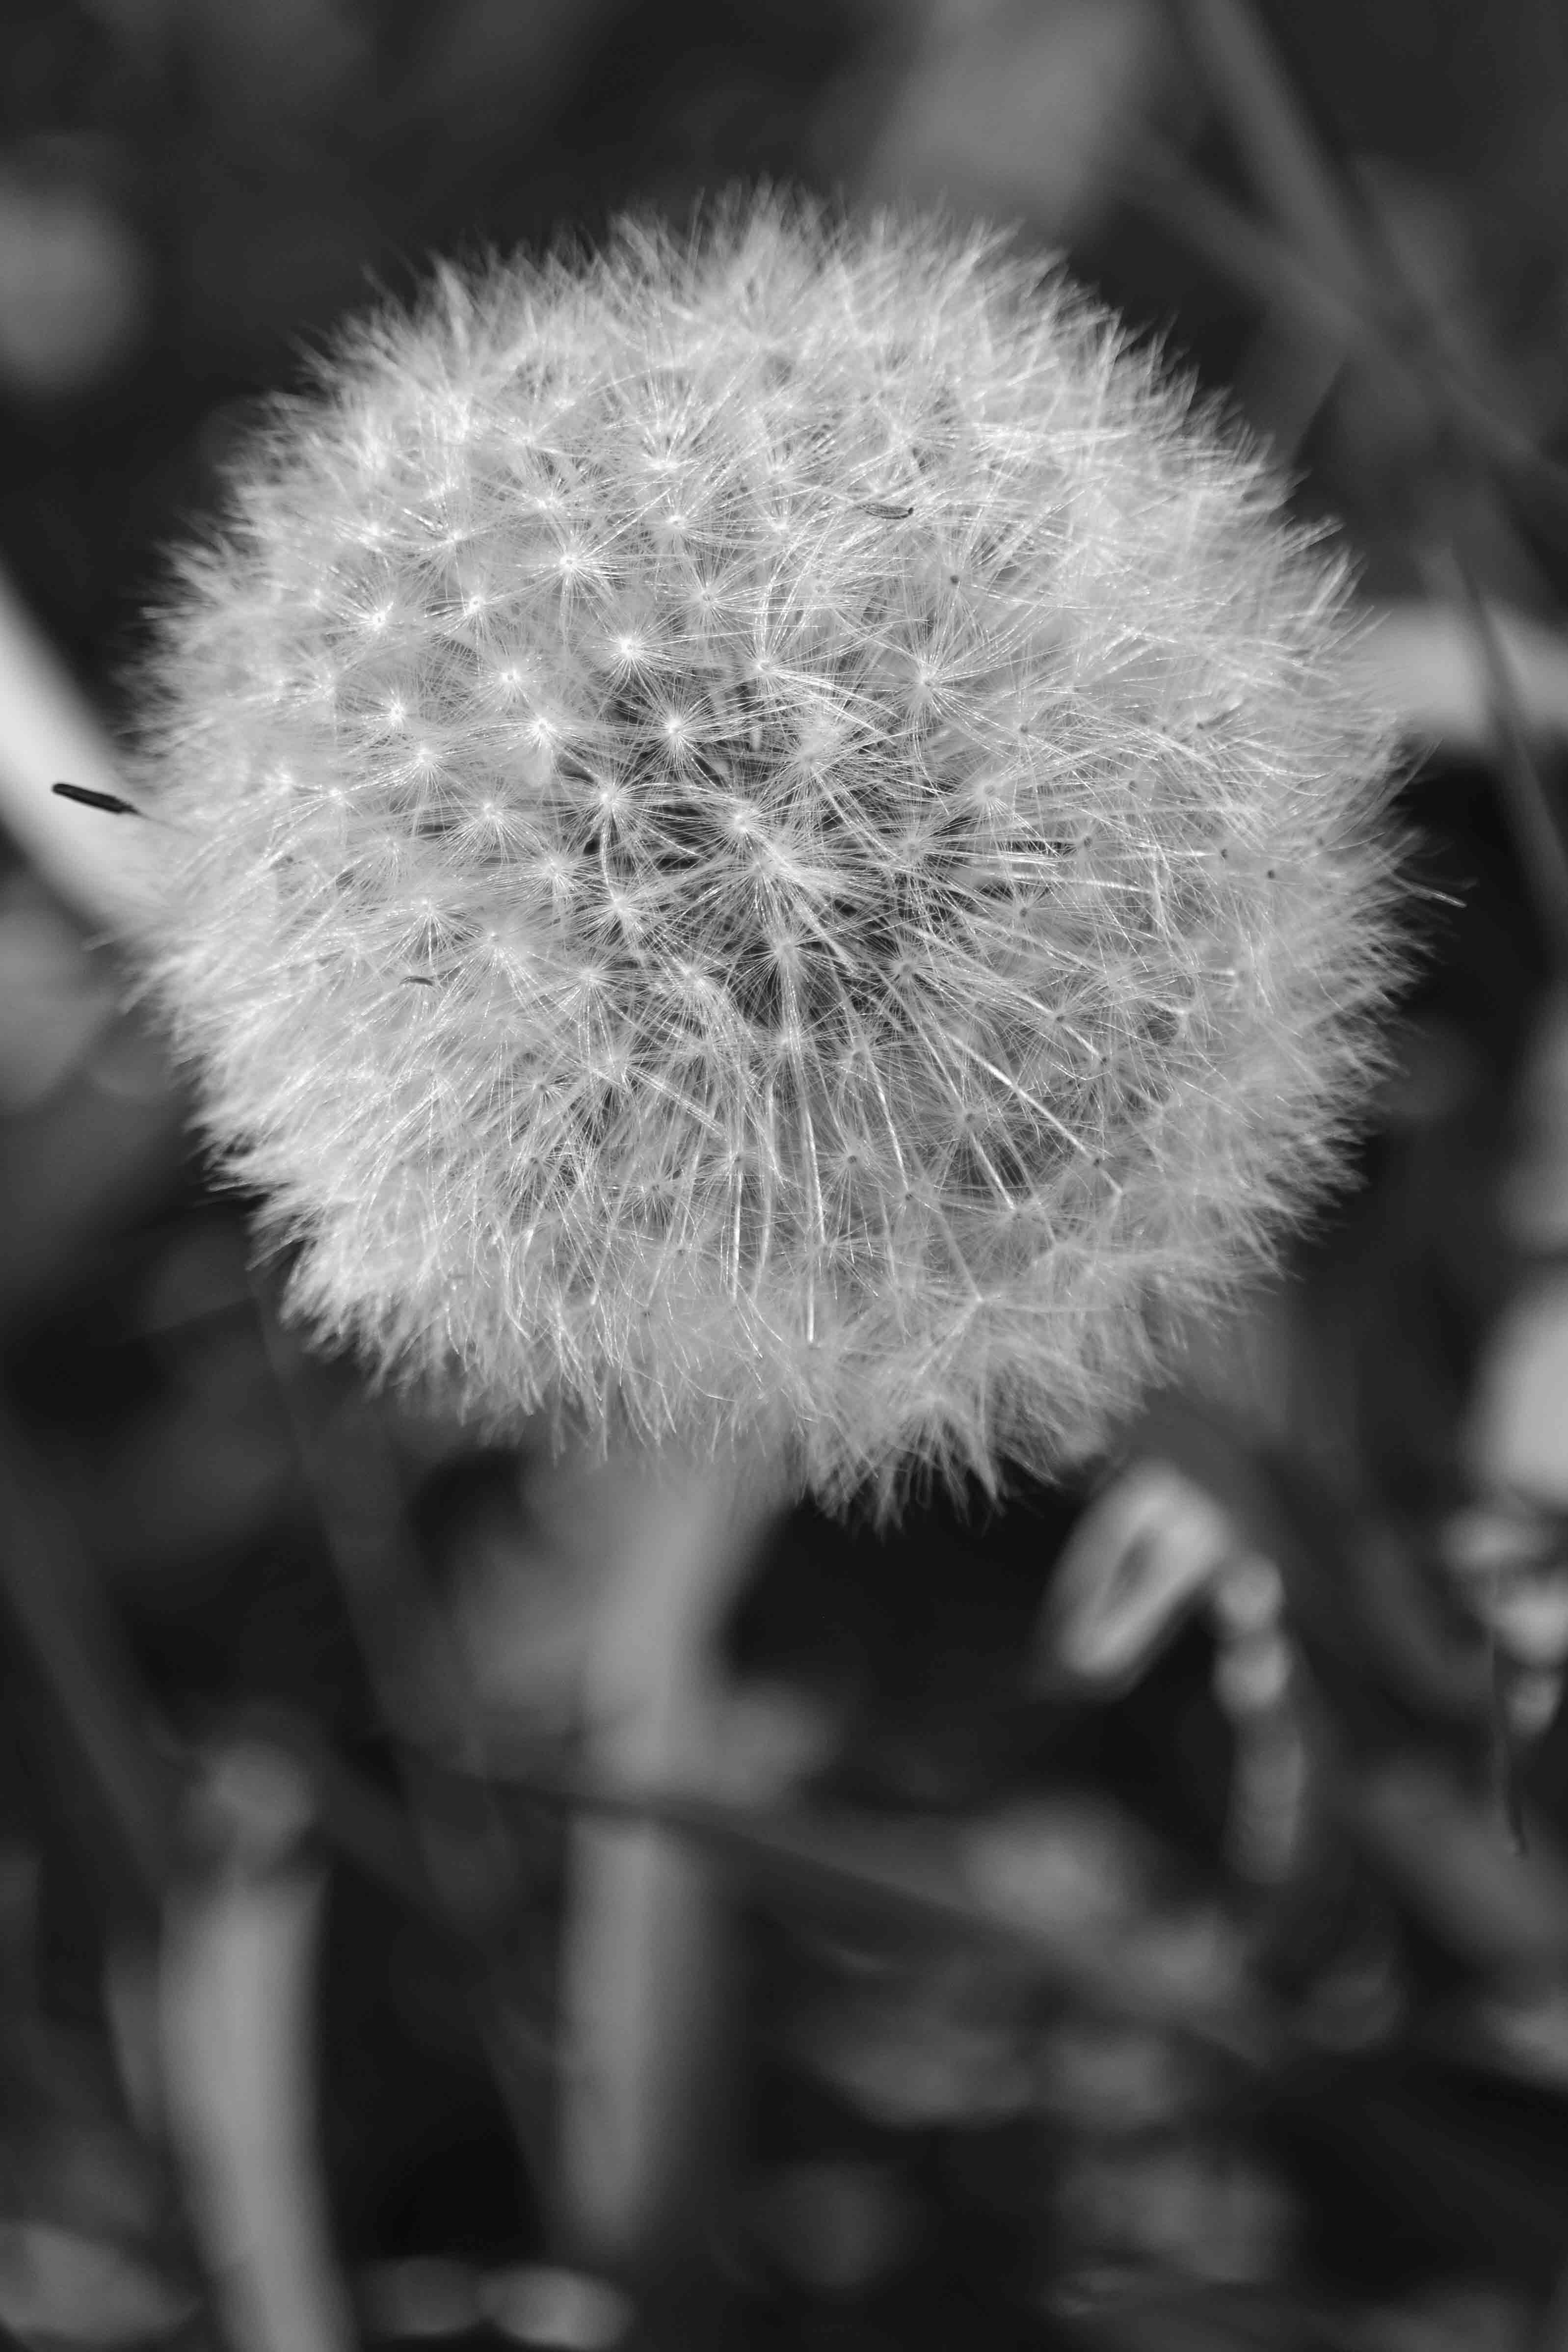 Free stock photo of black and white, dandelion, dandelion seed